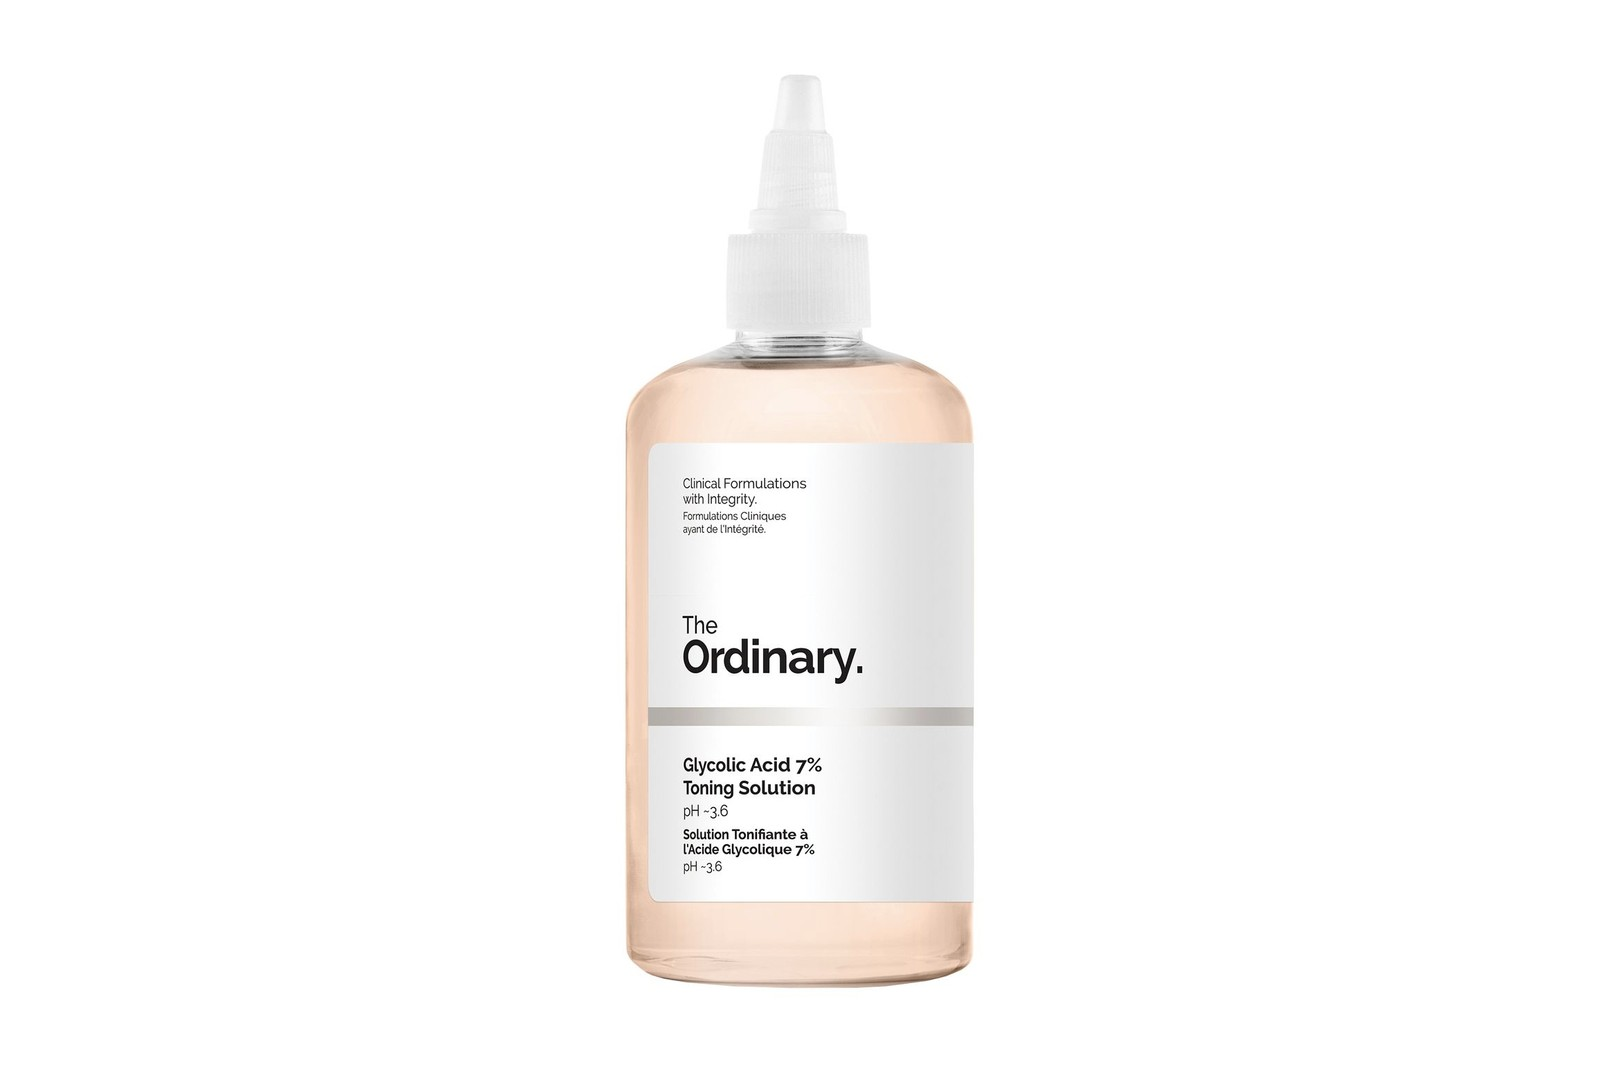 Best The Ordinary Products For Acne-Prone Skin Peeling Pore Solution Mask Serum Toner How To Clear Acne Scarring Skincare Beauty